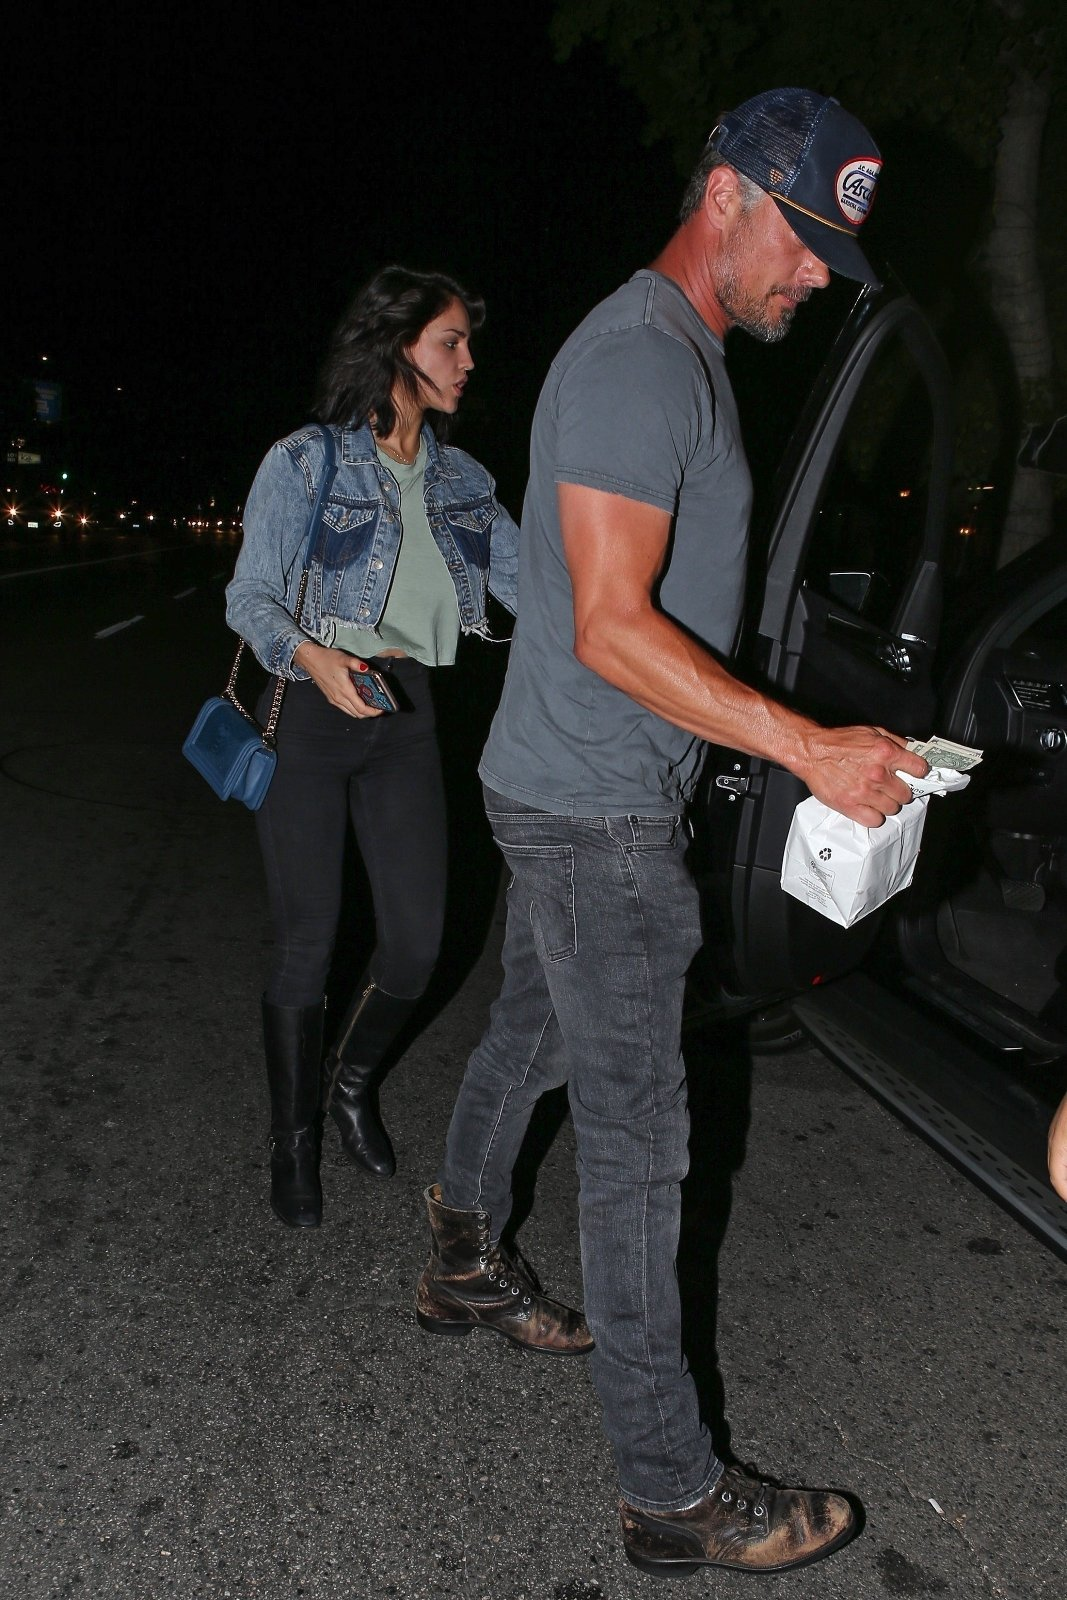 Sherman Oaks, CA  - *PREMIUM-EXCLUSIVE* - Things seem to be heating up between Josh Duhamel and Eiza Gonzalez are they are spotted going on a second date at Antonio's Pizzeria. The pair chat it up and enjoy each other's company at the Italian eatery in Sherman Oaks while waiting for their ride at the valet.  Pictured: Josh Duhamel, Eiza Gonzalez    *UK Clients - Pictures Containing Children Please Pixelate Face Prior To Publication*, Image: 374514763, License: Rights-managed, Restrictions: , Model Release: no, Credit line: Profimedia, AKM-GSI